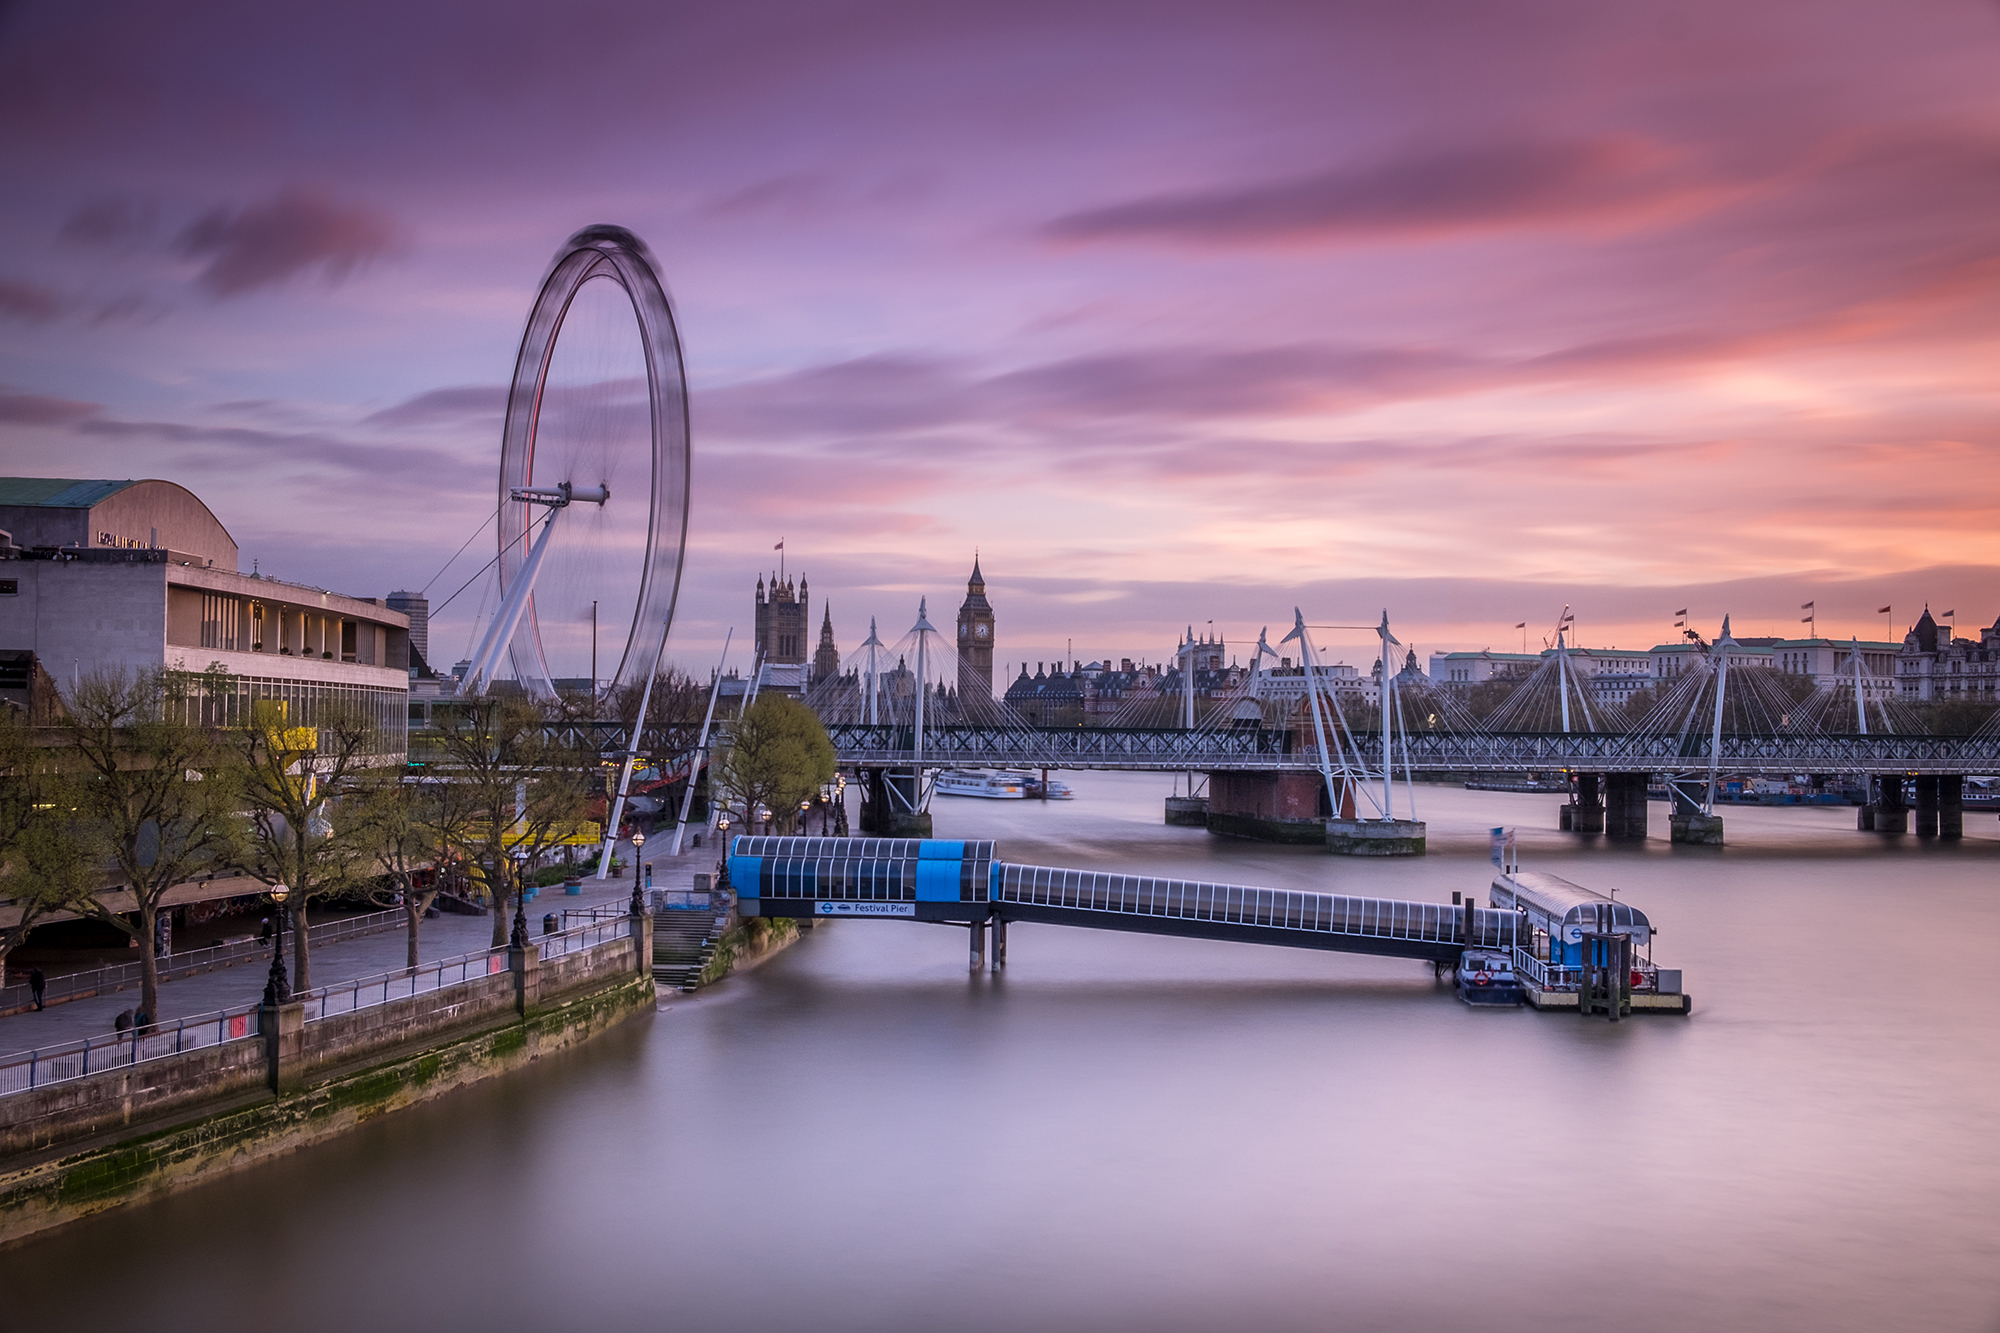 Sunset at the South Bank taken by Trevor Sherwin